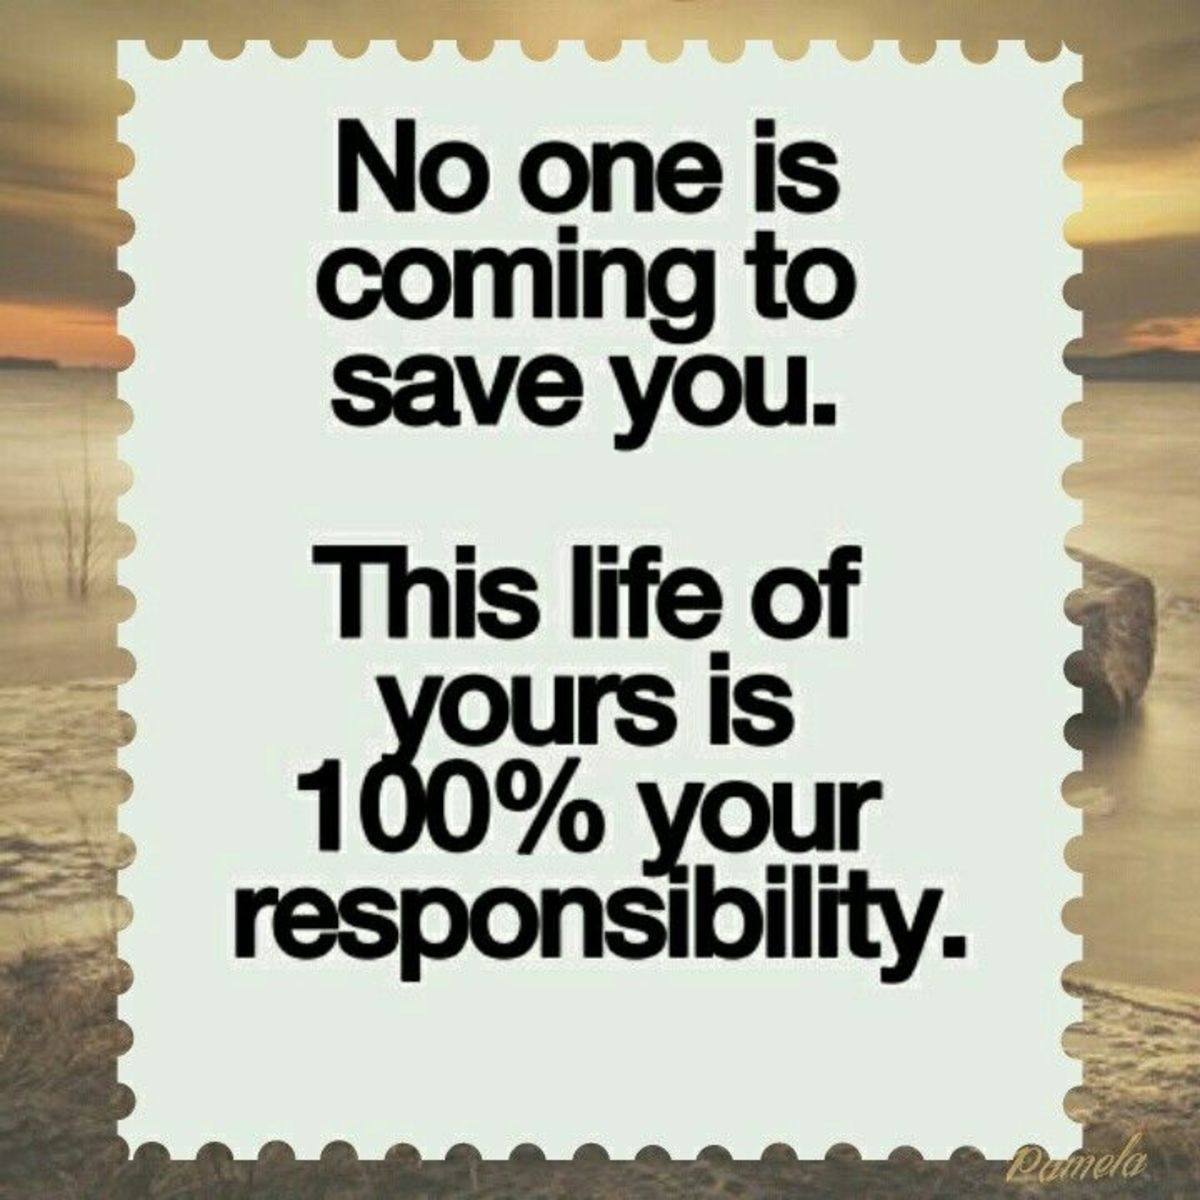 nobodys-coming-to-save-you-your-life-is-one-hundred-percent-your-responsibility